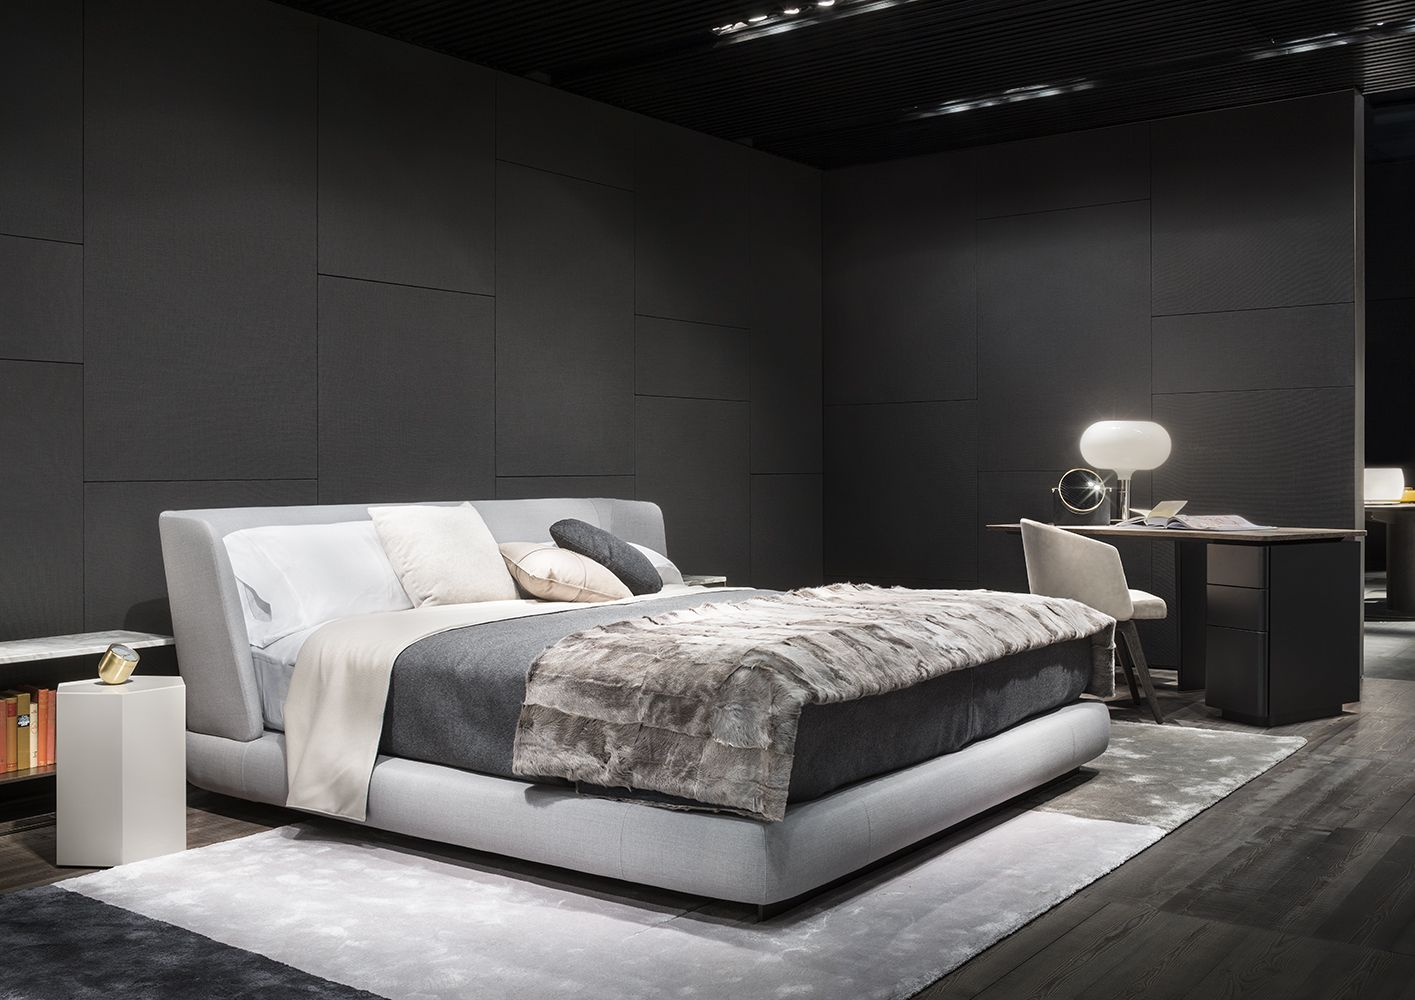 minotti letti testiera letto poliform imbottita with minotti letti mescolando divano letto. Black Bedroom Furniture Sets. Home Design Ideas